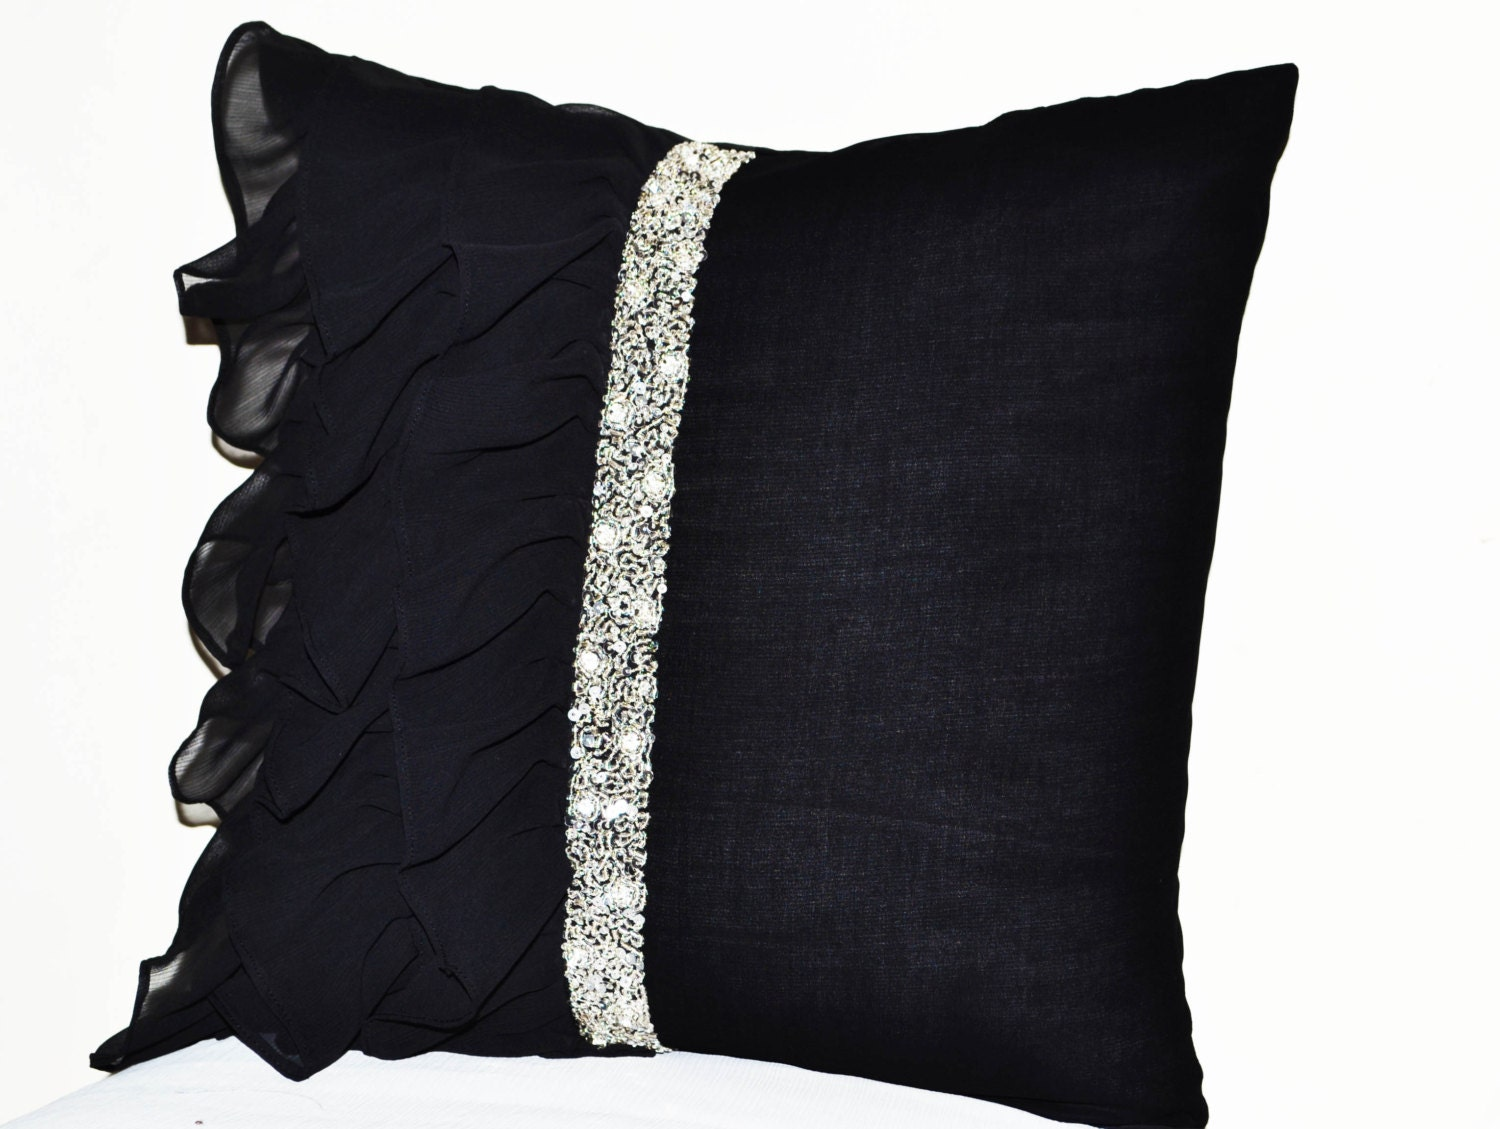 Black Throw Pillows For Bed : Black ruffled sequin throw pillow 18x18 Decorative Pillow